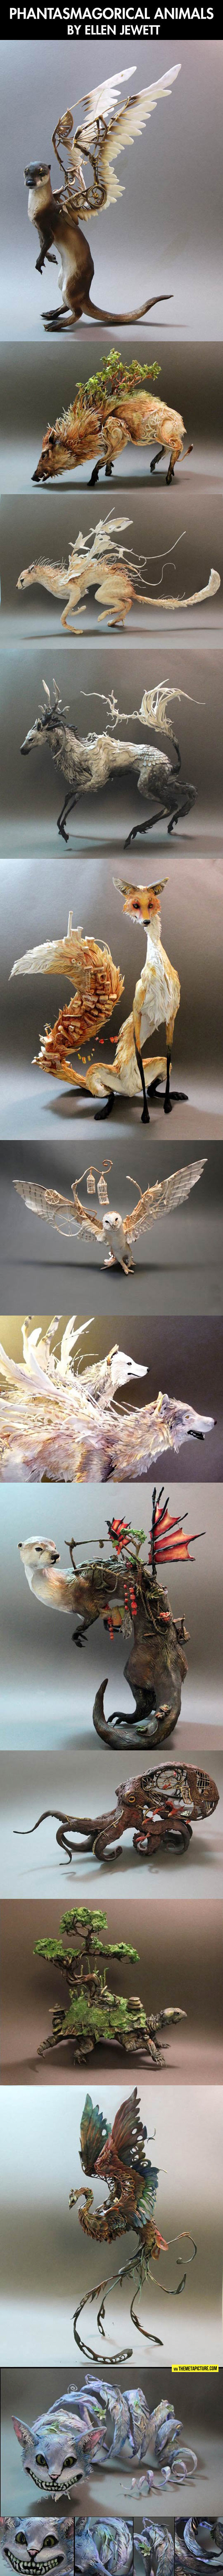 cool-animals-wing-steampunk-sculpture